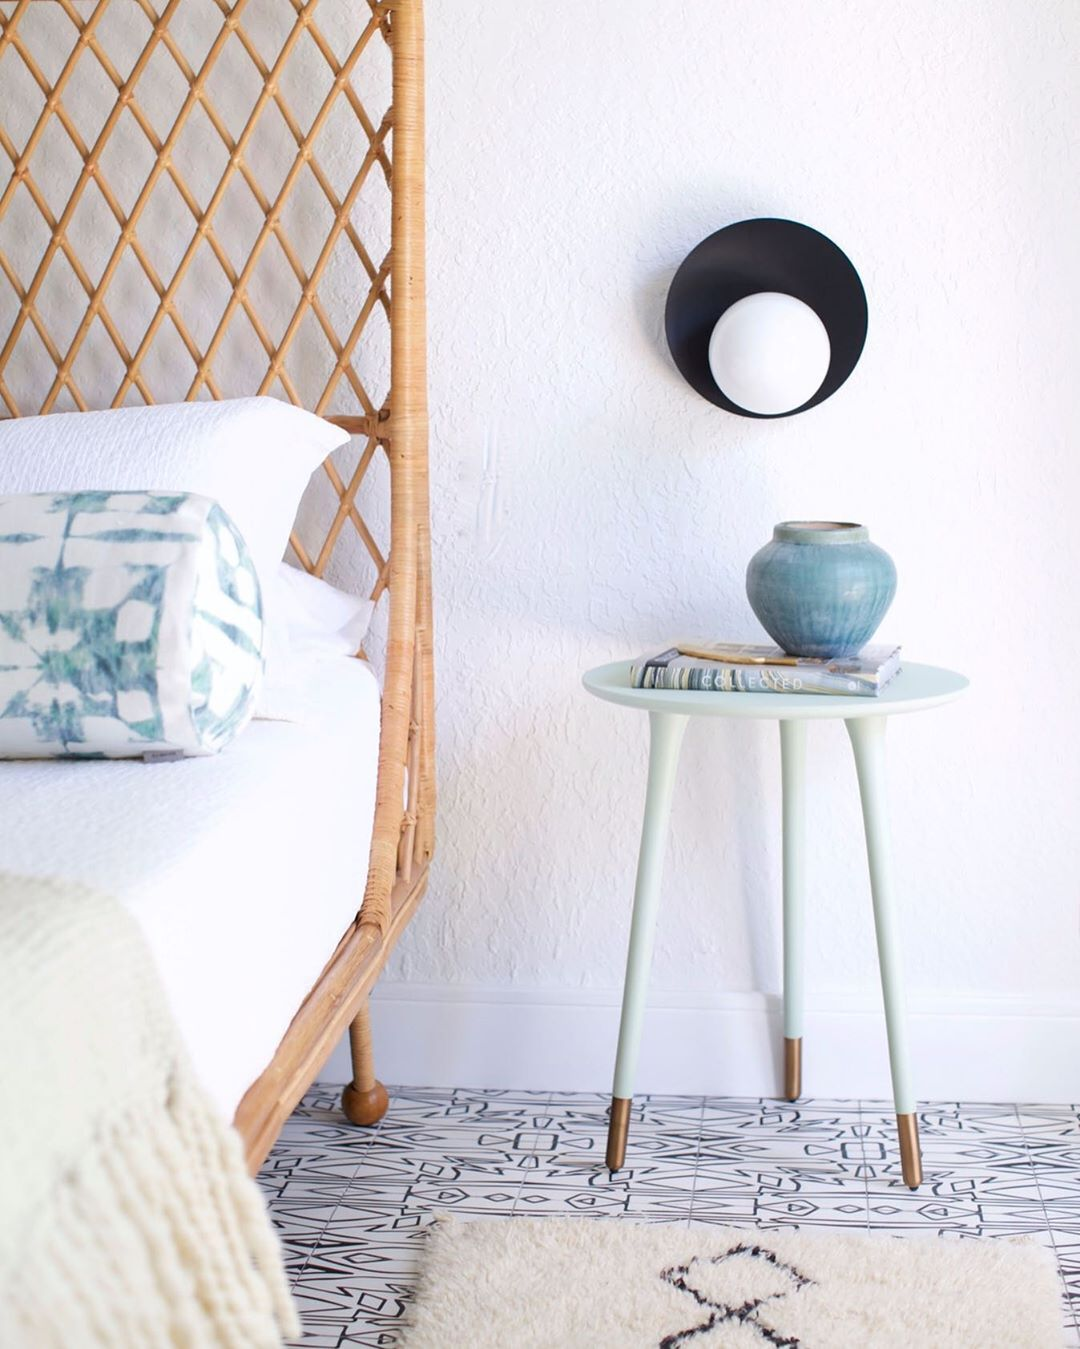 Modern Beach Home Decor With Rattan Bed And Mint Green Side Table